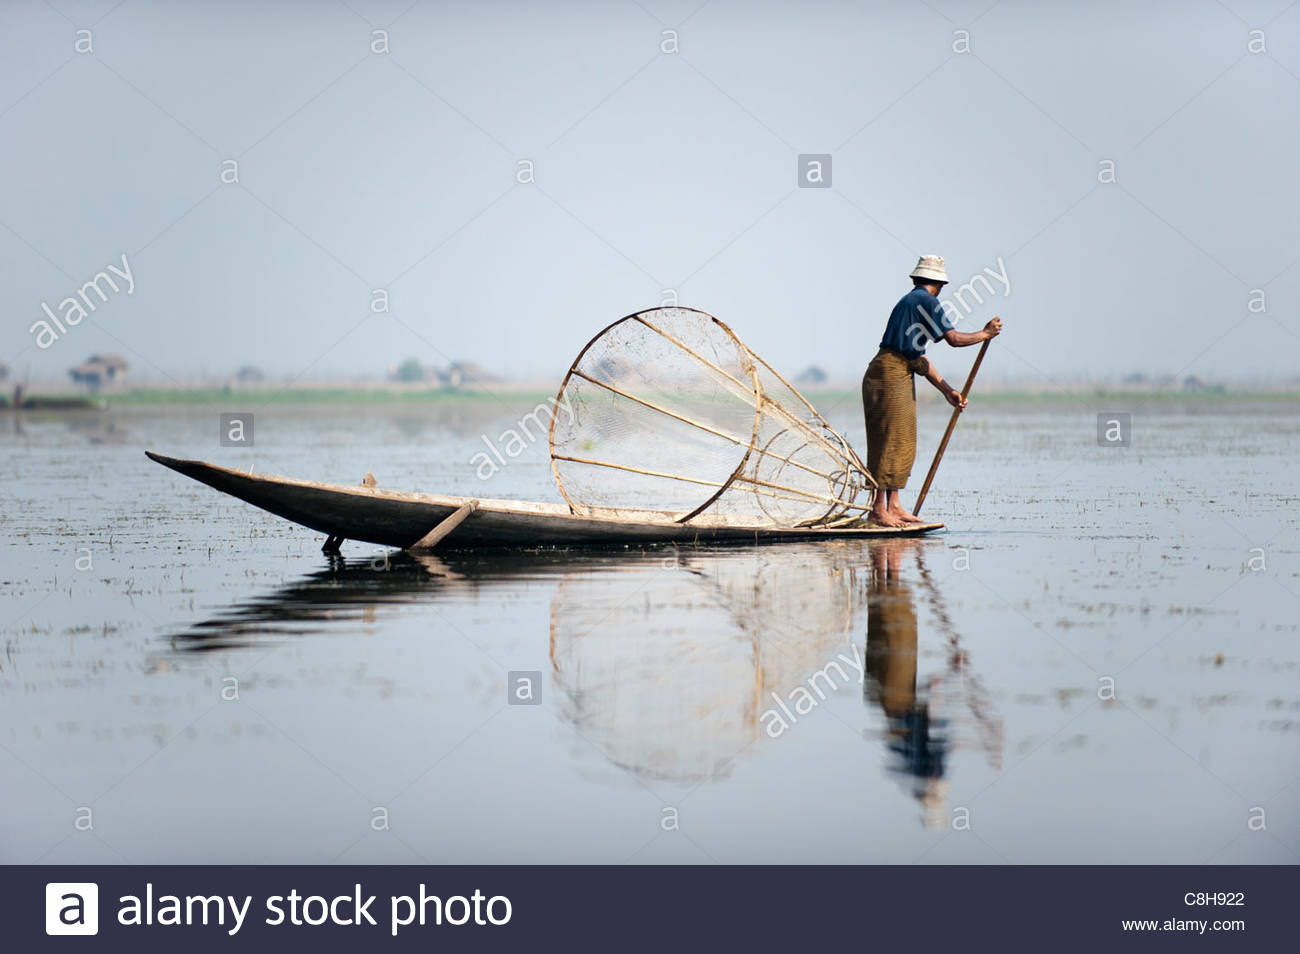 A basket fisherman scans Inle lake looking for fish in shallow water - Stock Image